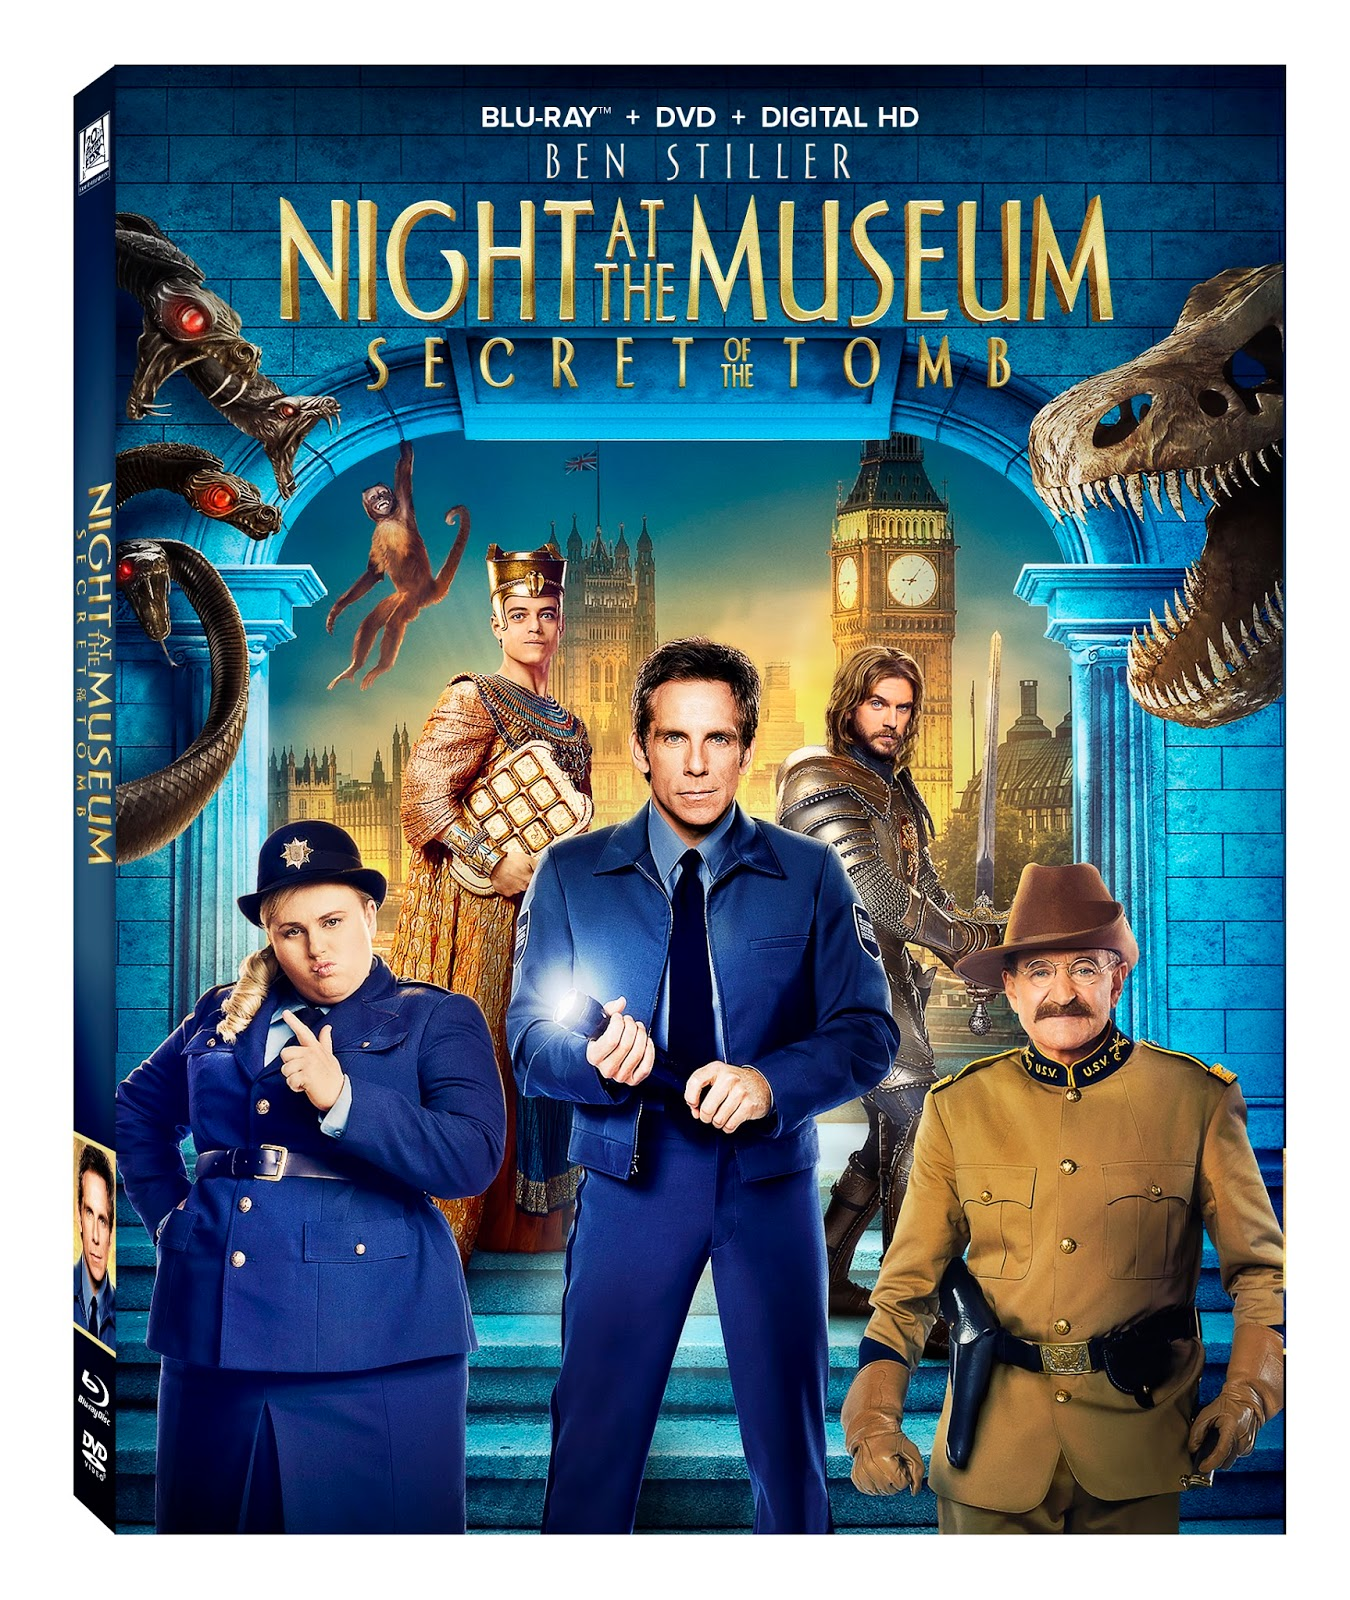 night at the museum 3, robin williams, ben stiller